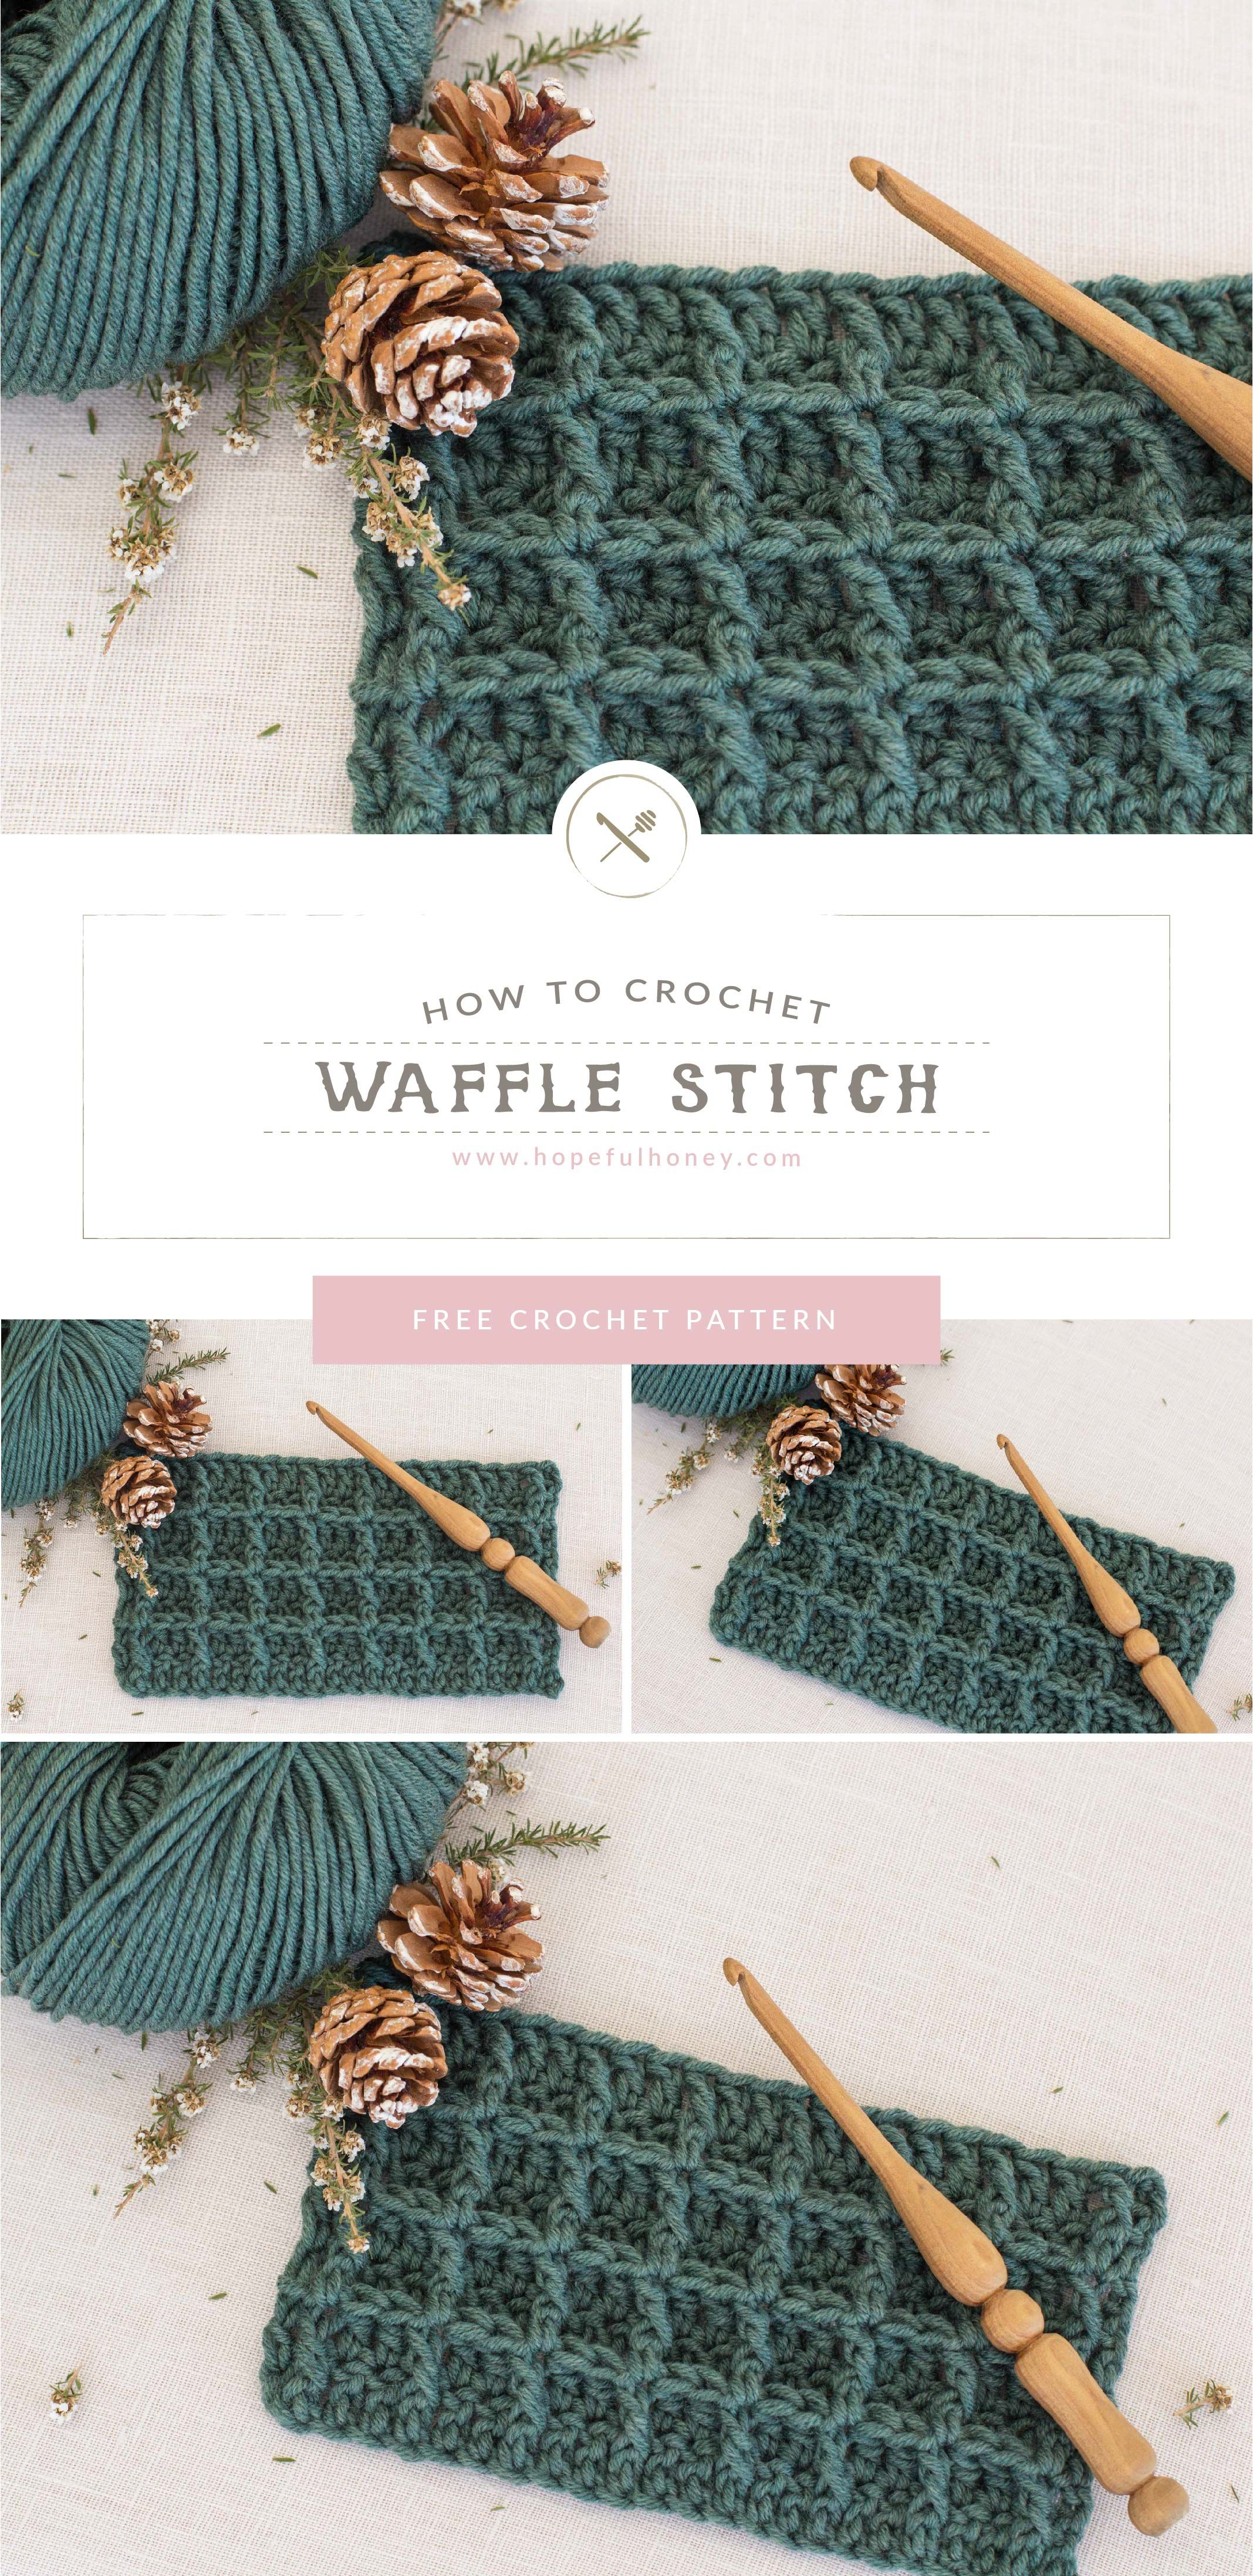 How To: Crochet The Waffle Stitch - Easy Tutorial by Hopeful Honey